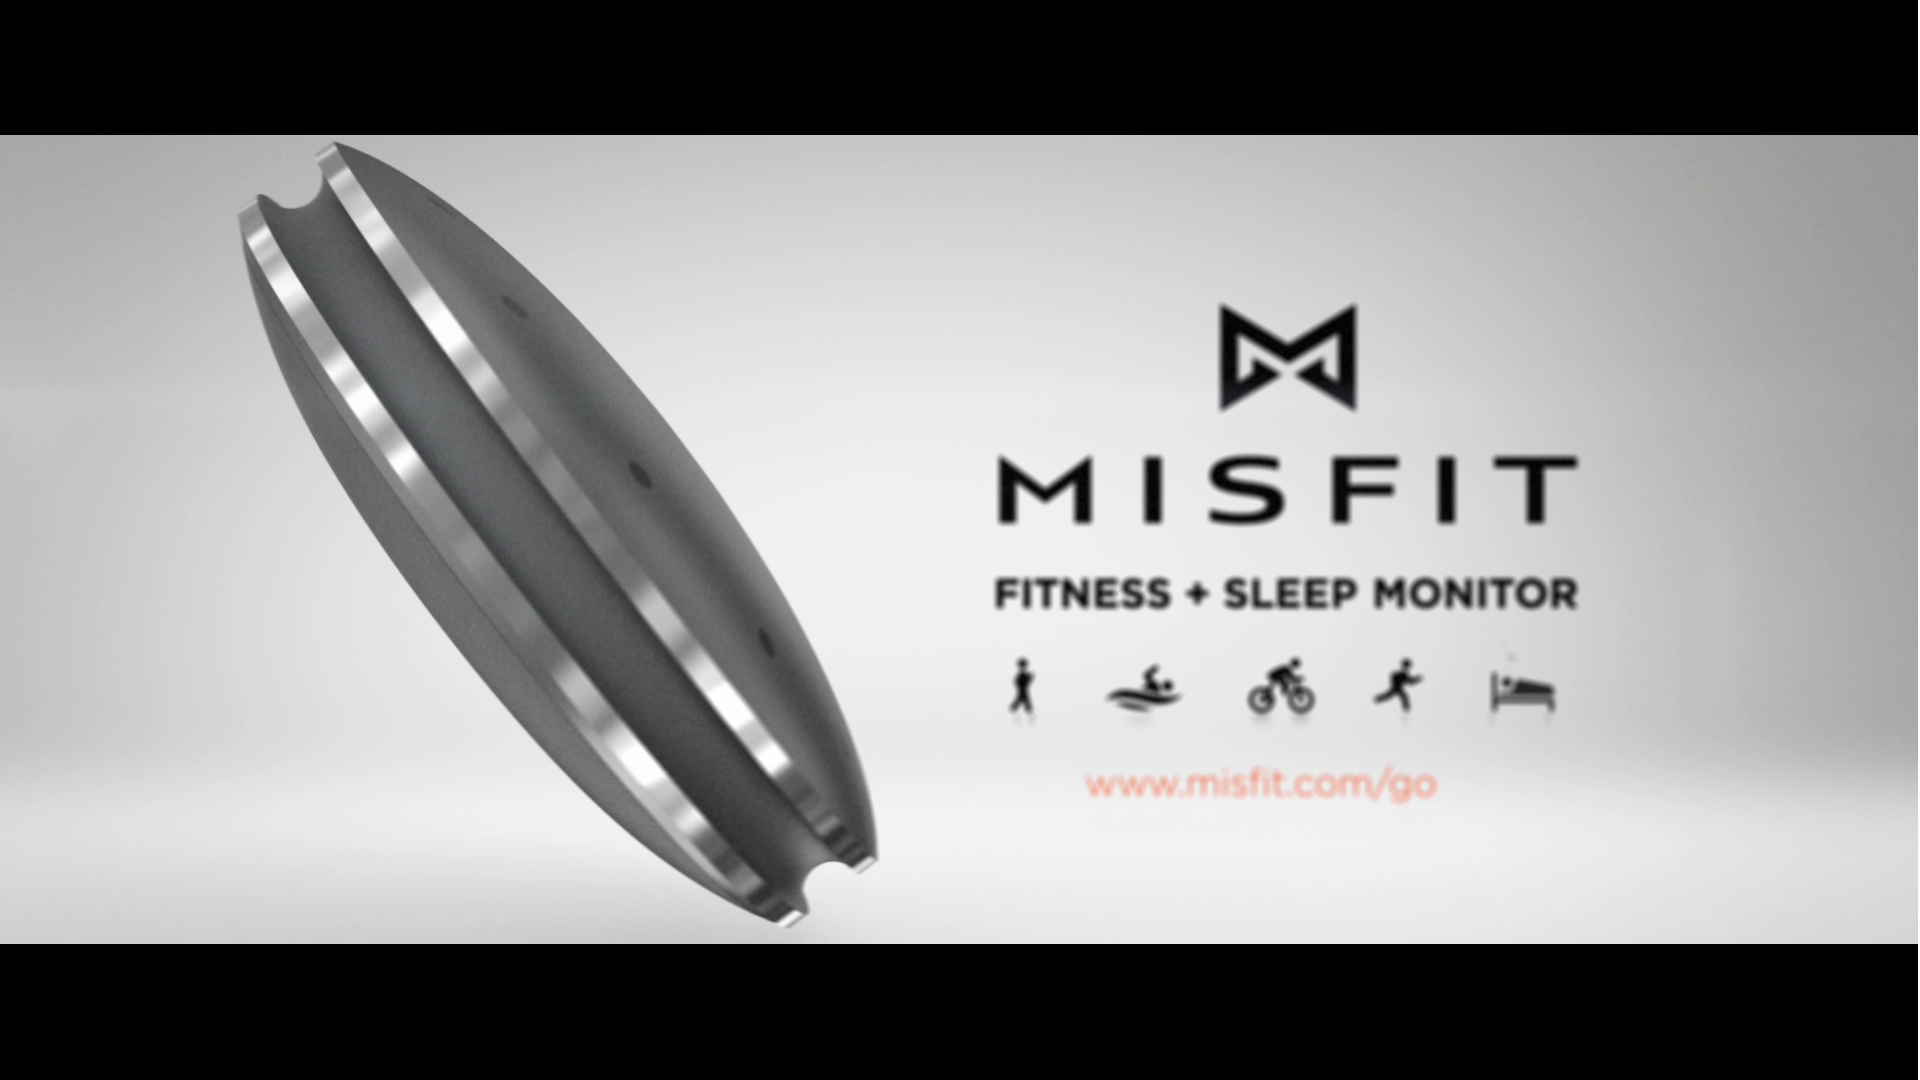 Misfit_LIfestyle_126_NoSlate_1920x1080 (02825).png